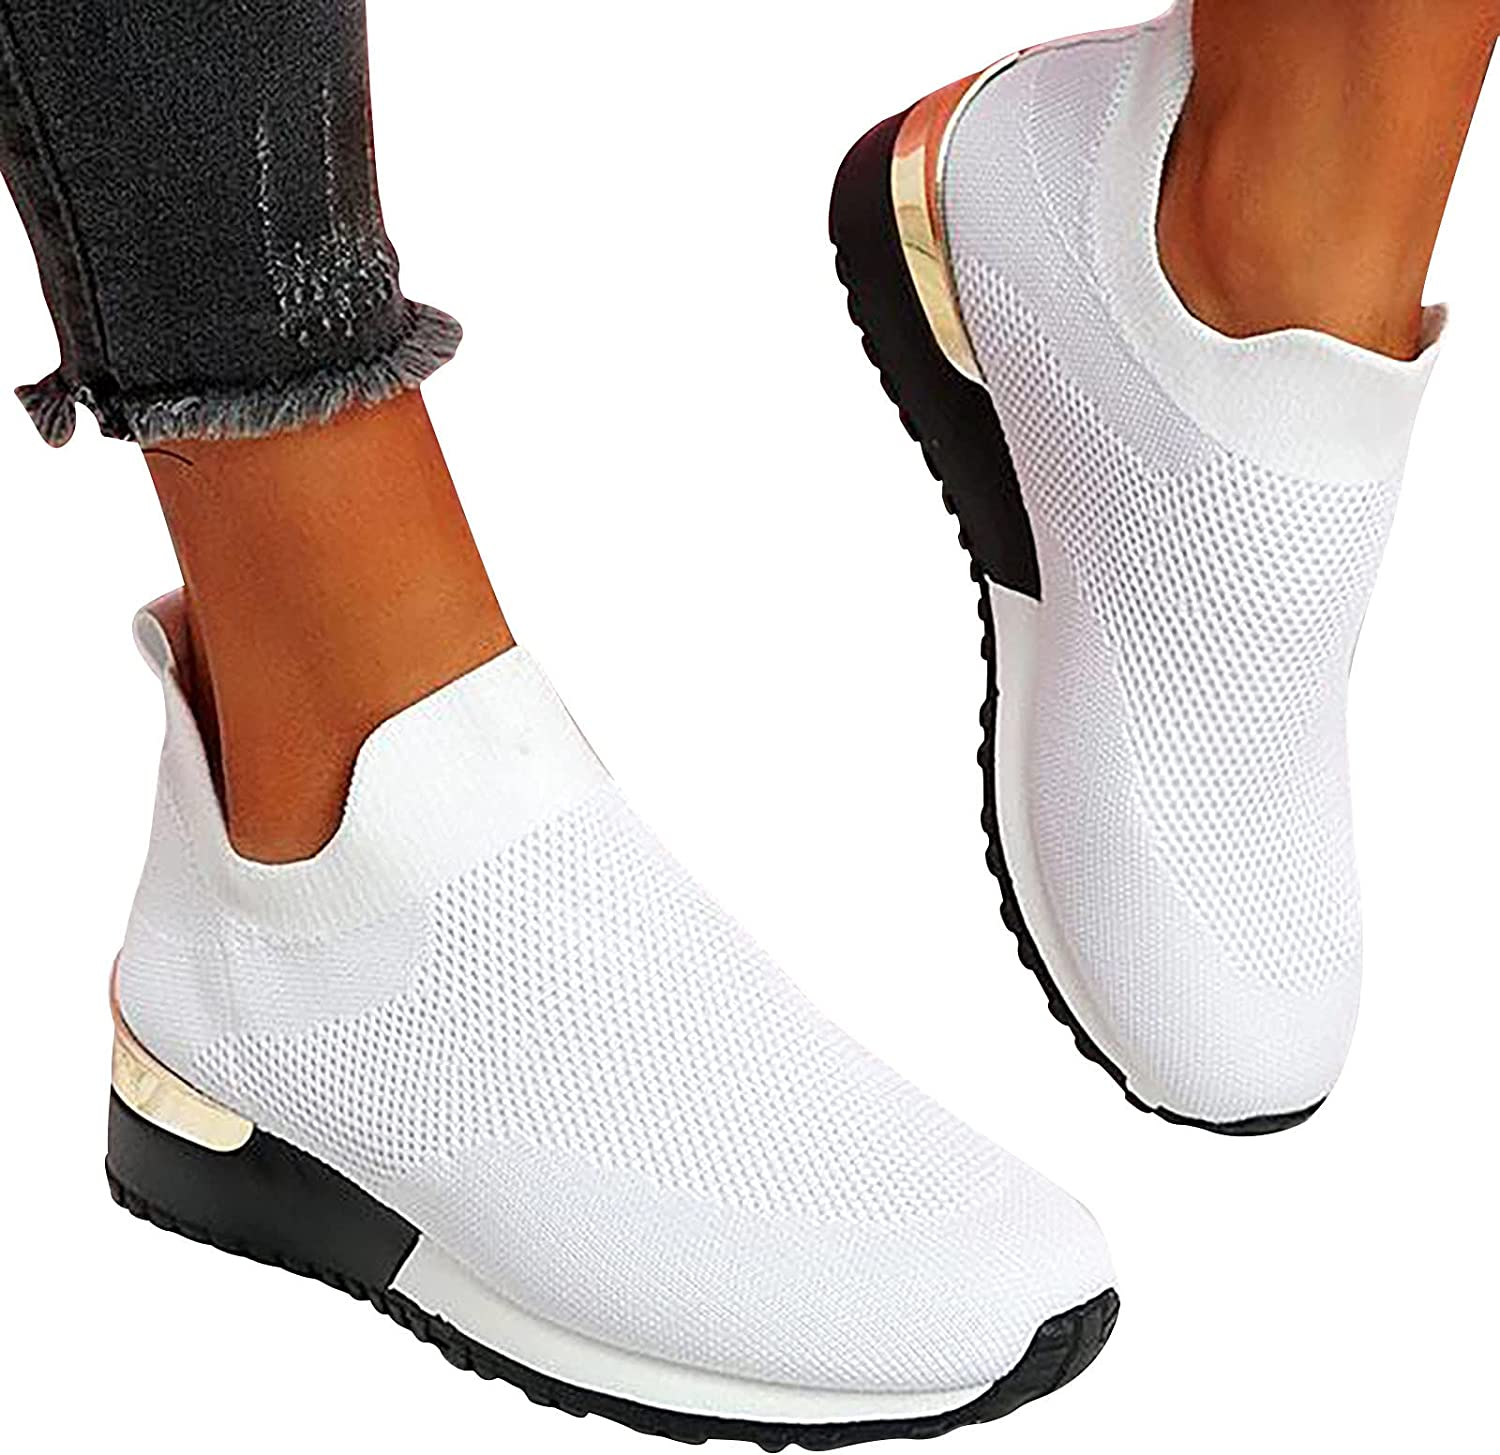 oiangi Women's Athletic Walking Shoes Casual Mesh-Breathable Com